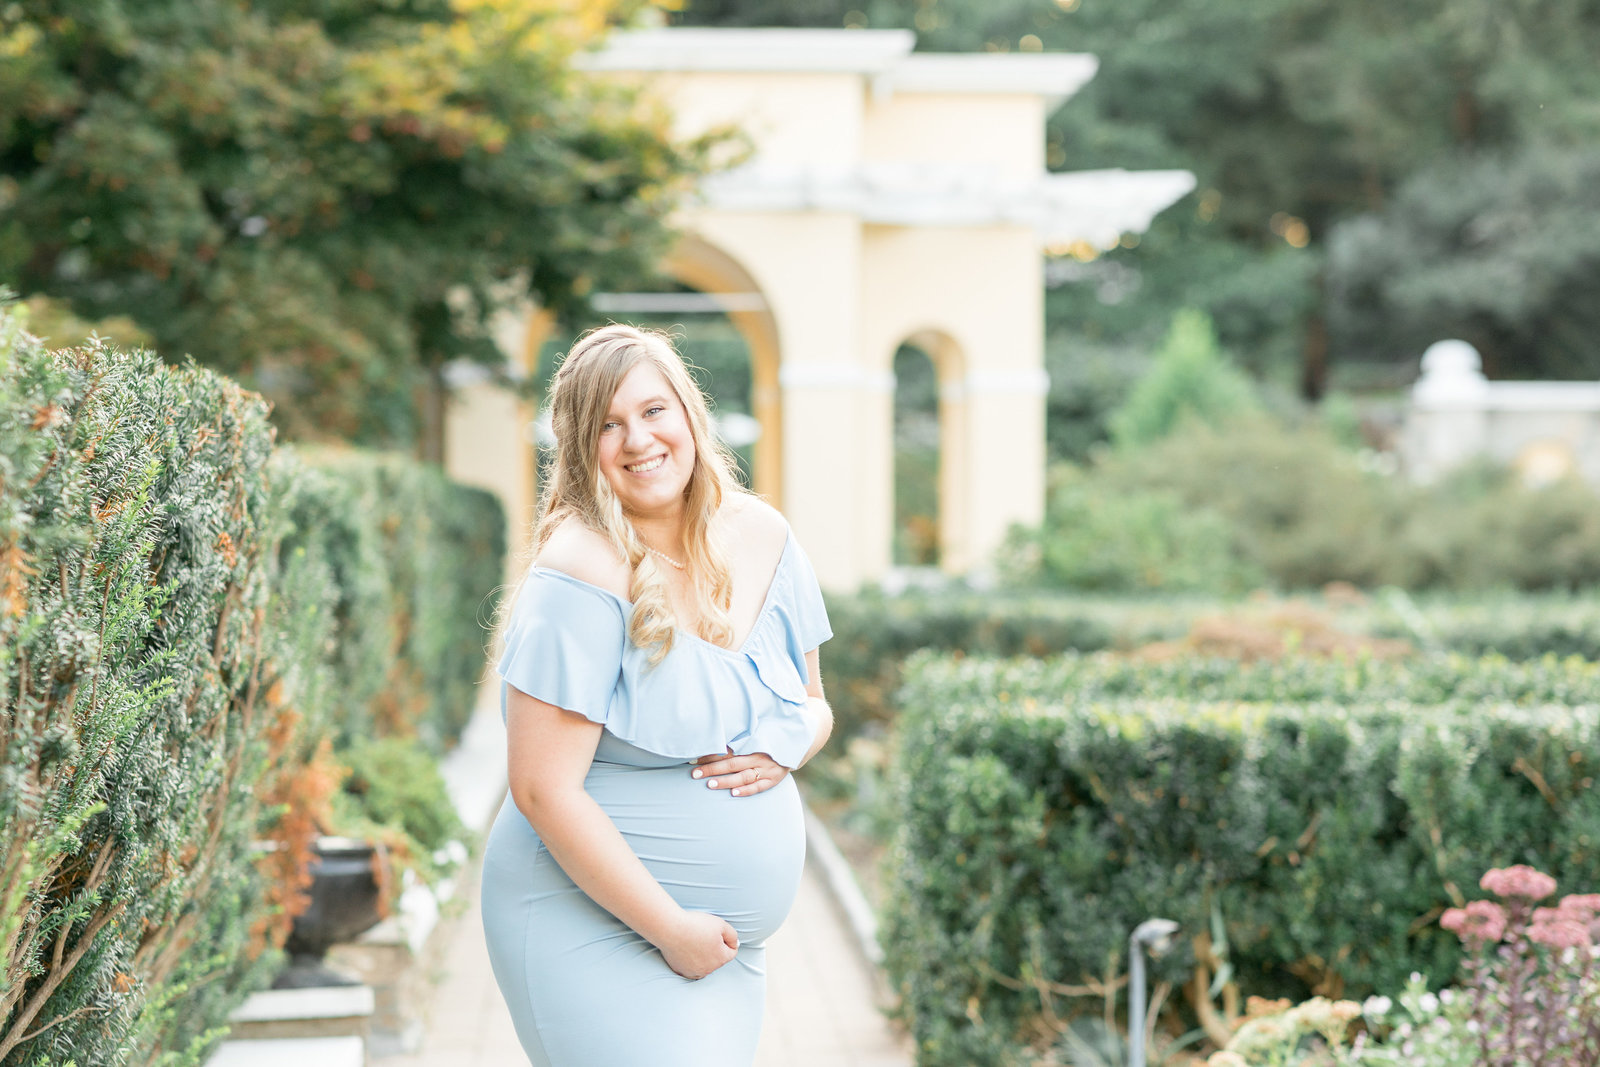 kimberly-ben-summer-maternity-photo-session-at-airlie-warrenton-va-019